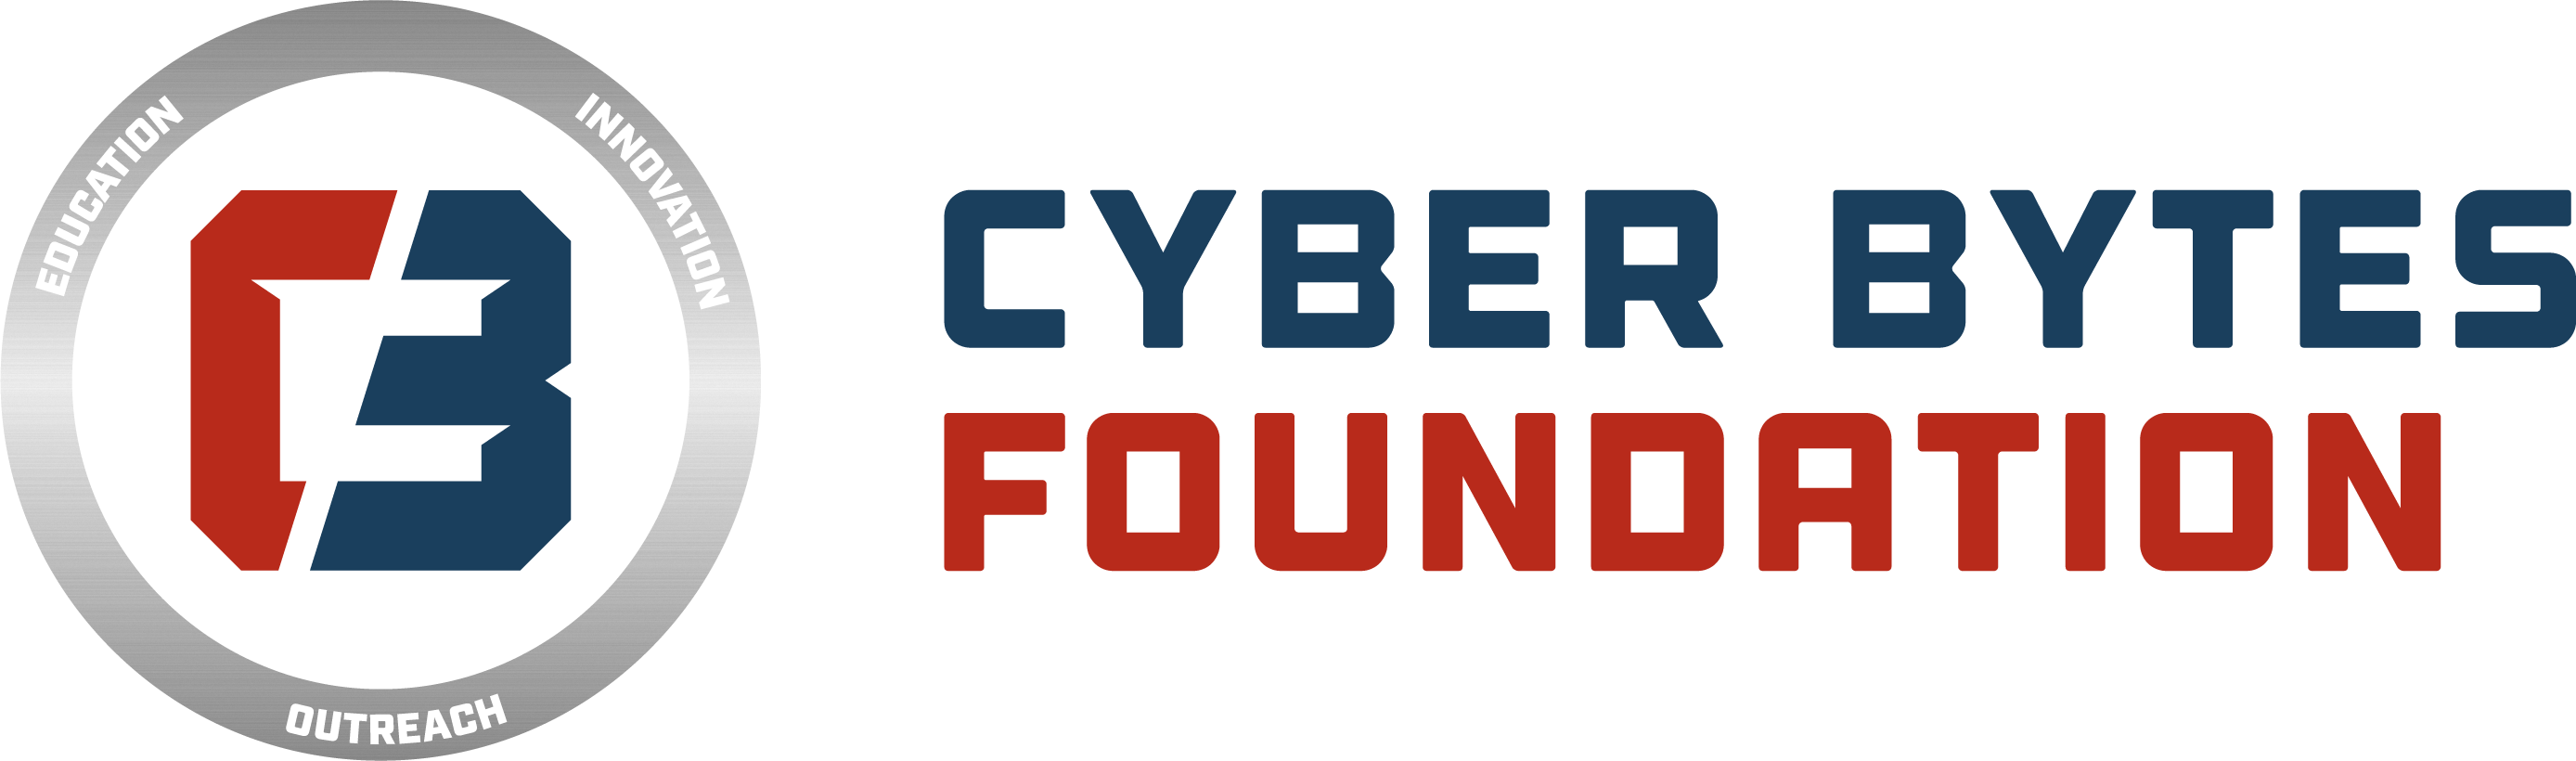 CyberBytes_logo_horizontal_web_transparent